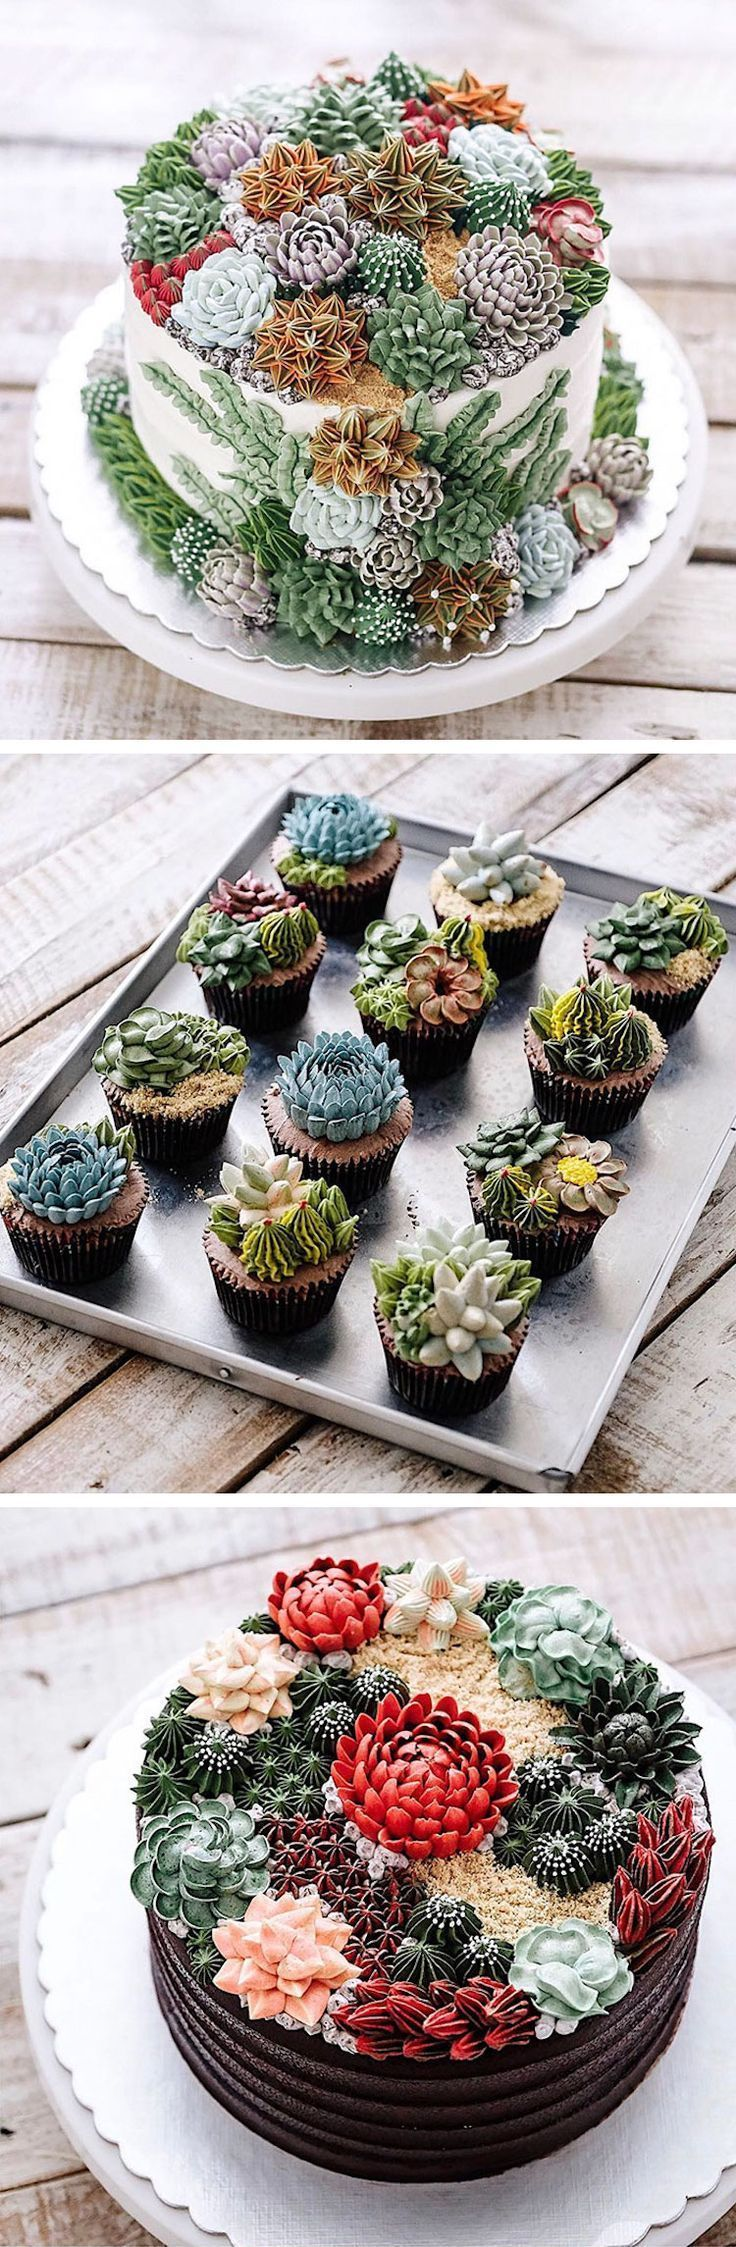 Lifelike 'Succulent Cakes' Turn Prickly Plants into